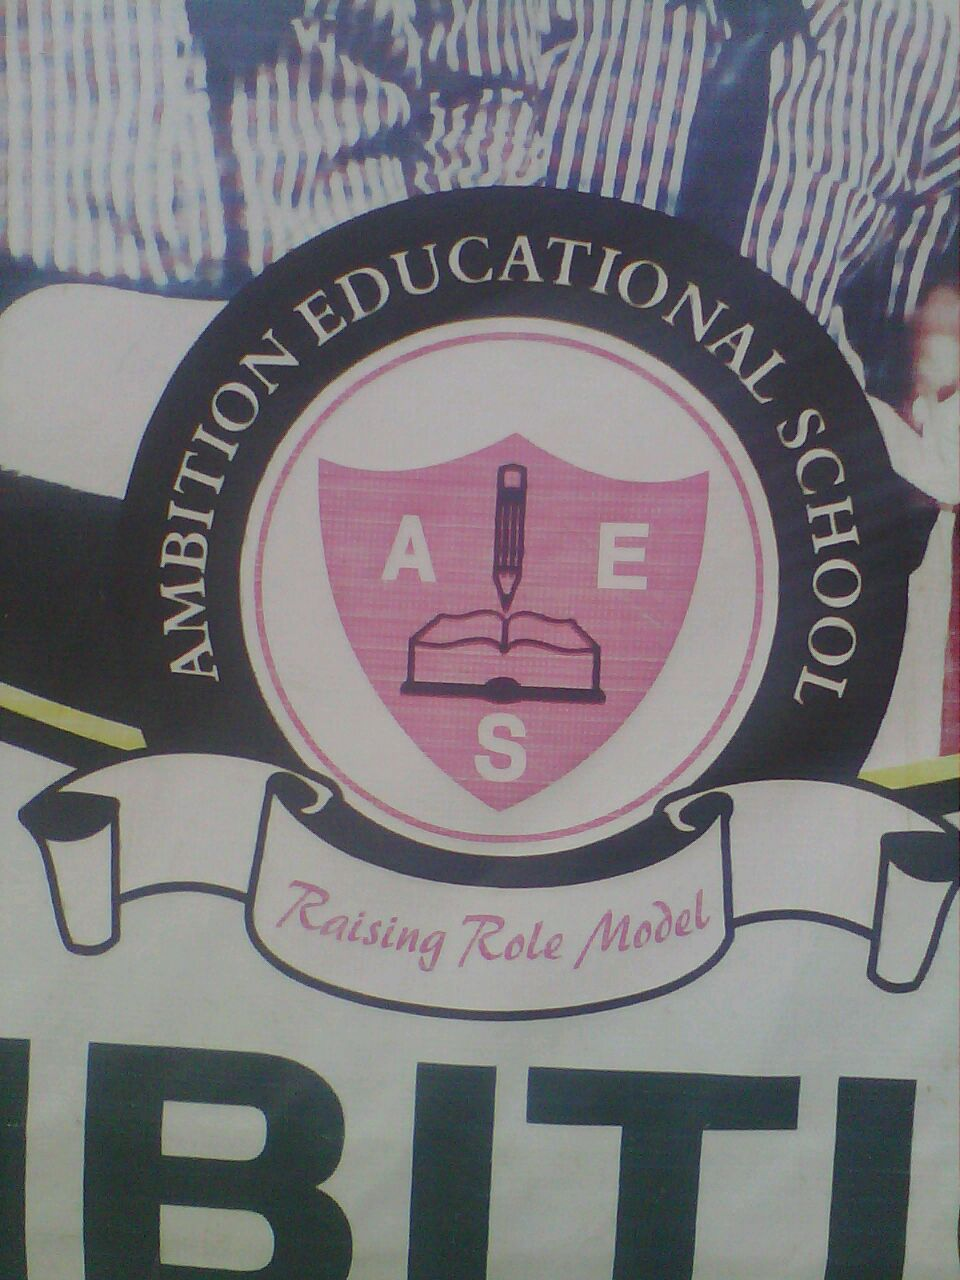 AMBITION EDUCATIONAL SCHOOL